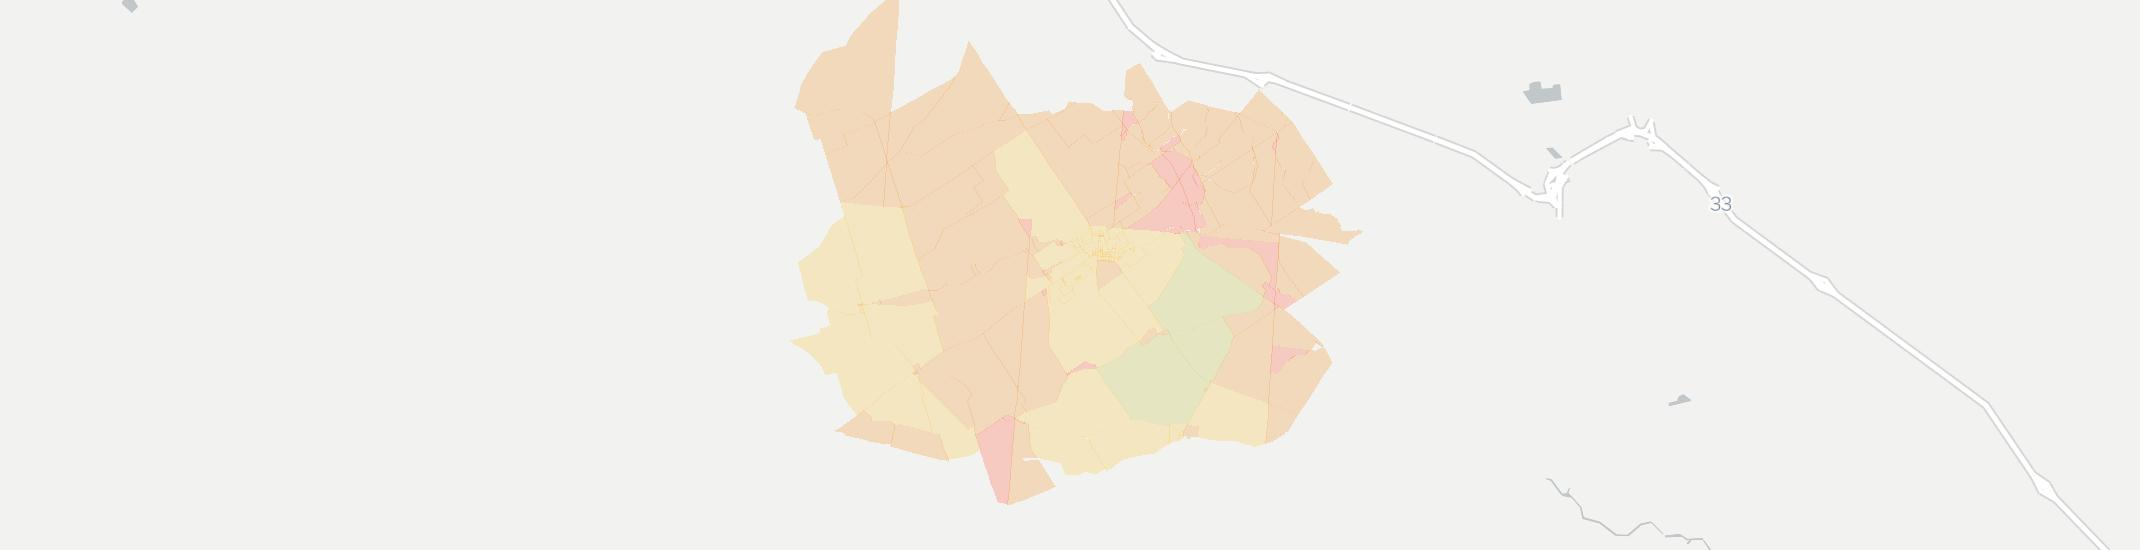 North Lewisburg Internet Competition Map. Click for interactive map.